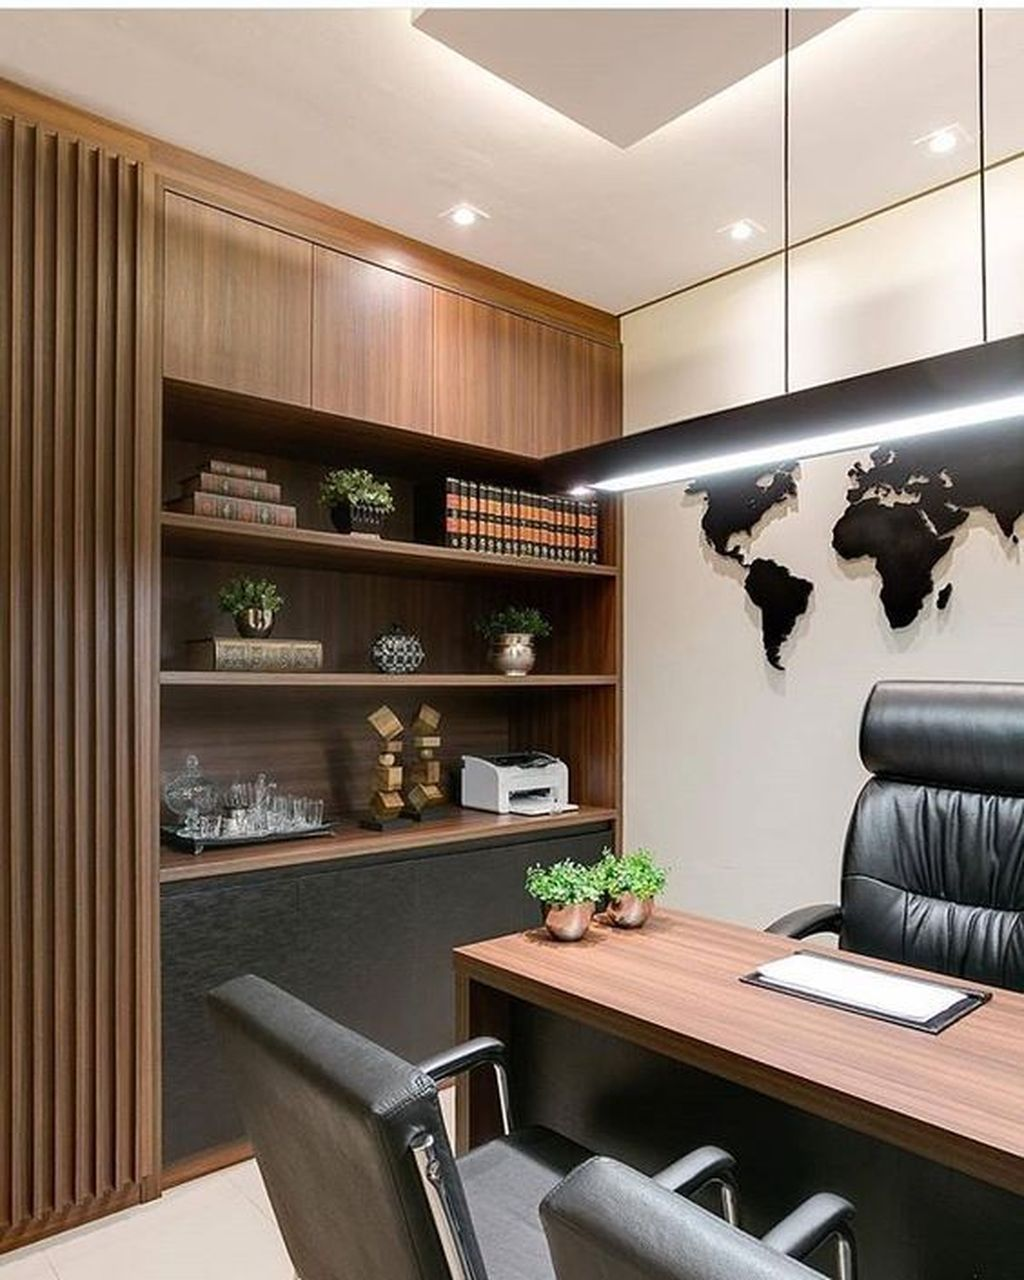 43 Extraordinary Small Home Office Design Ideas With Traditional Themes Modern Office Interiors Home Office Design Small Office Design